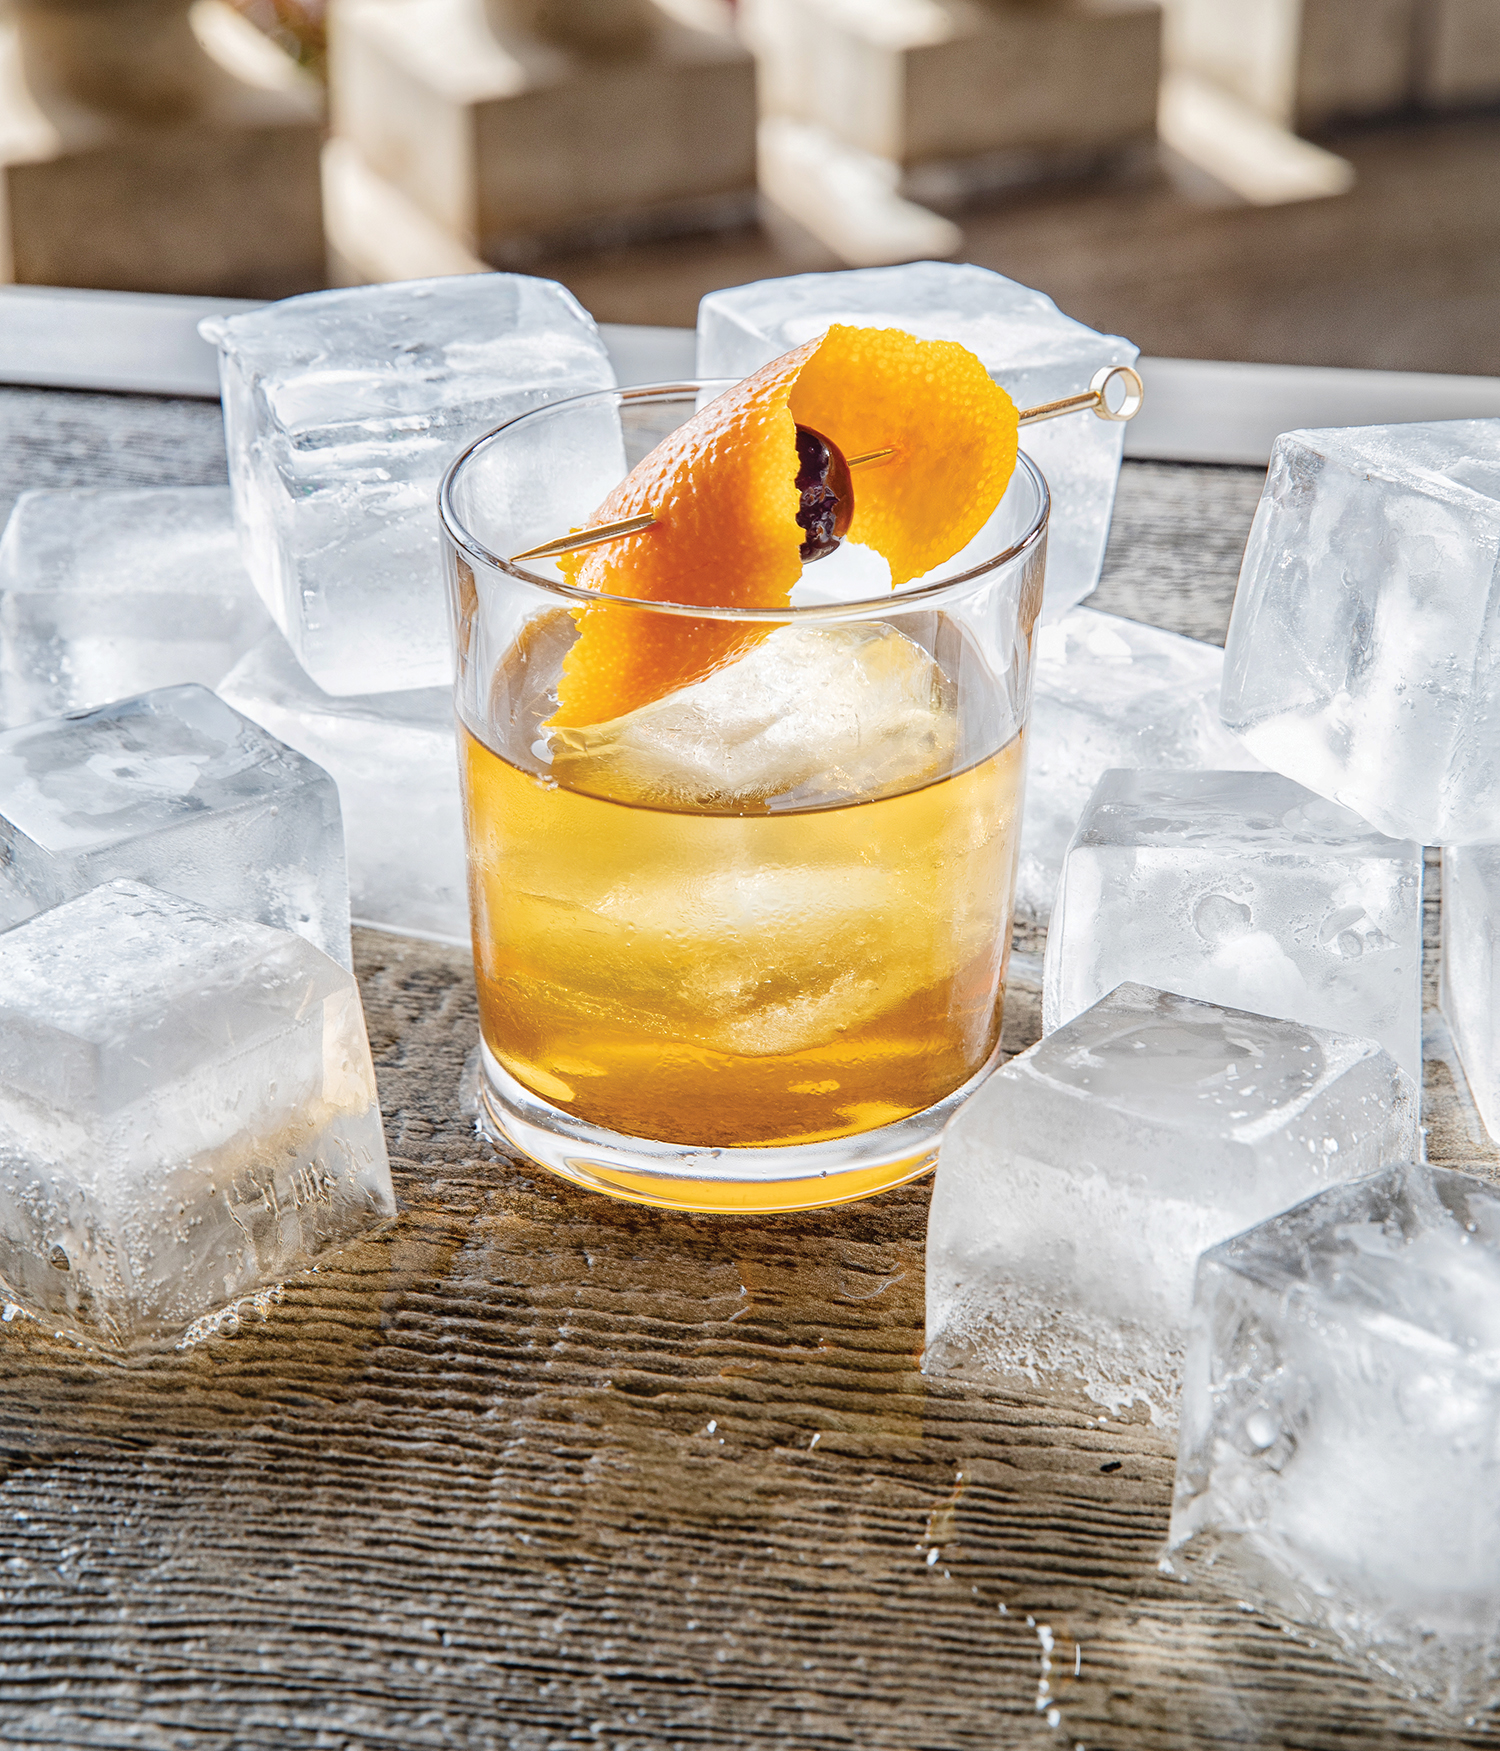 Delicious_Macdonald_Orange Drink_Large_Ice_Cubes